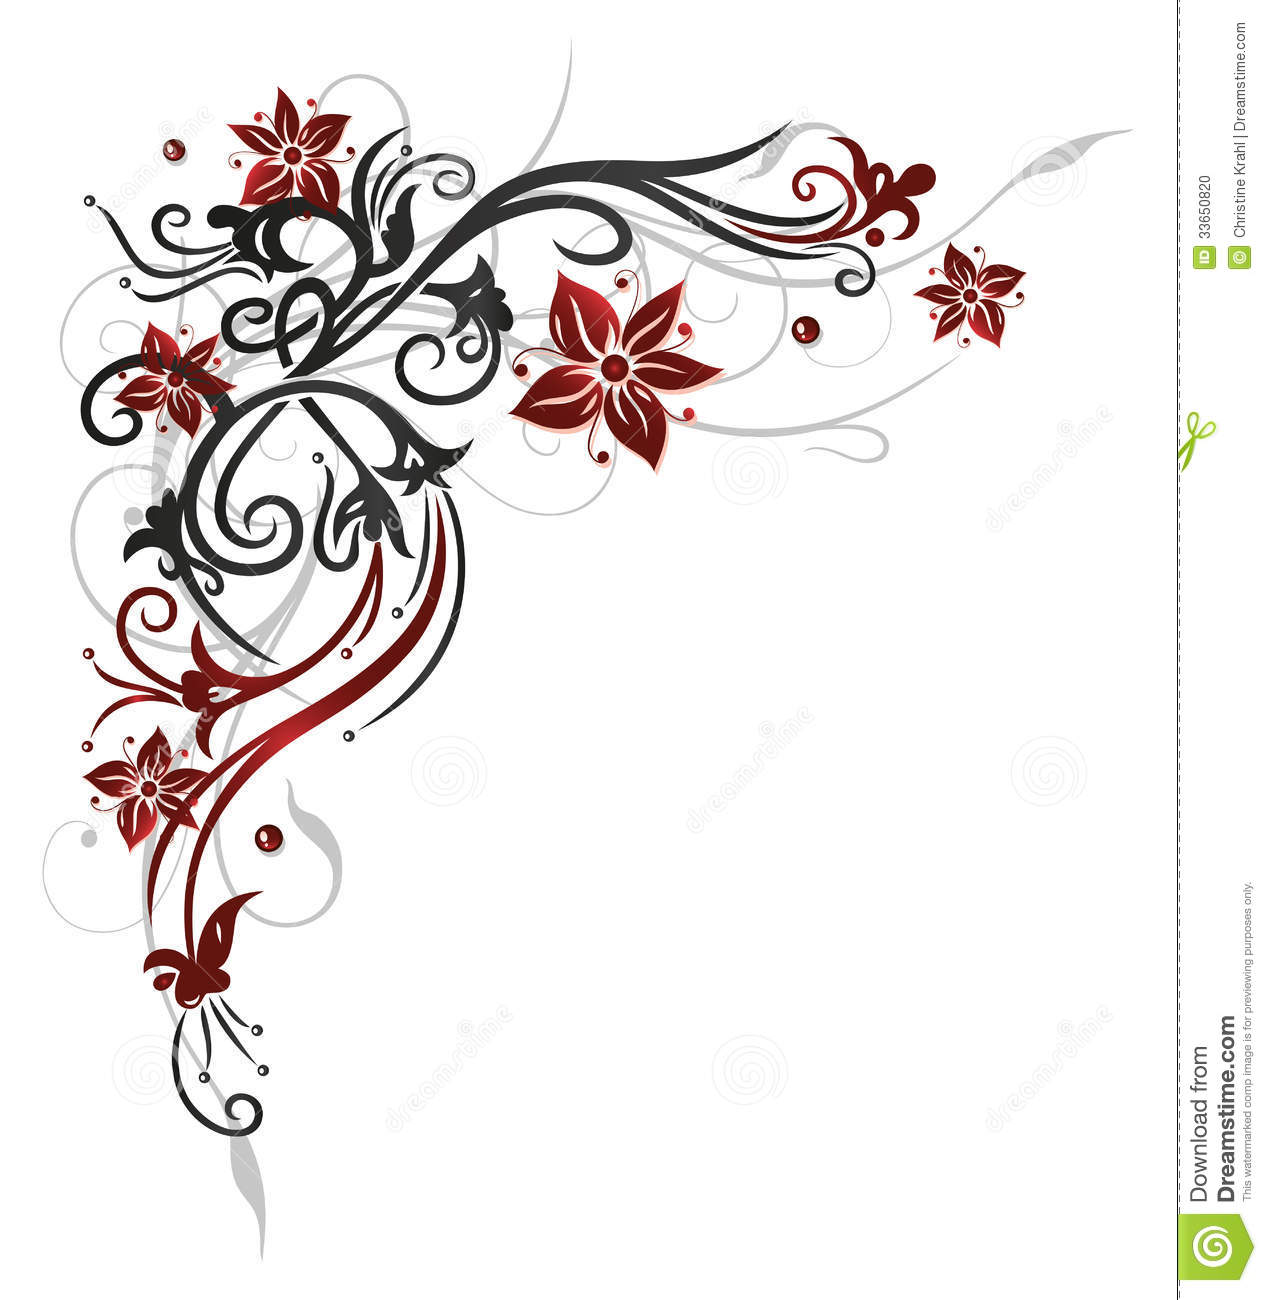 Floral tendril flowers red stock vector illustration for Cadre floral mural